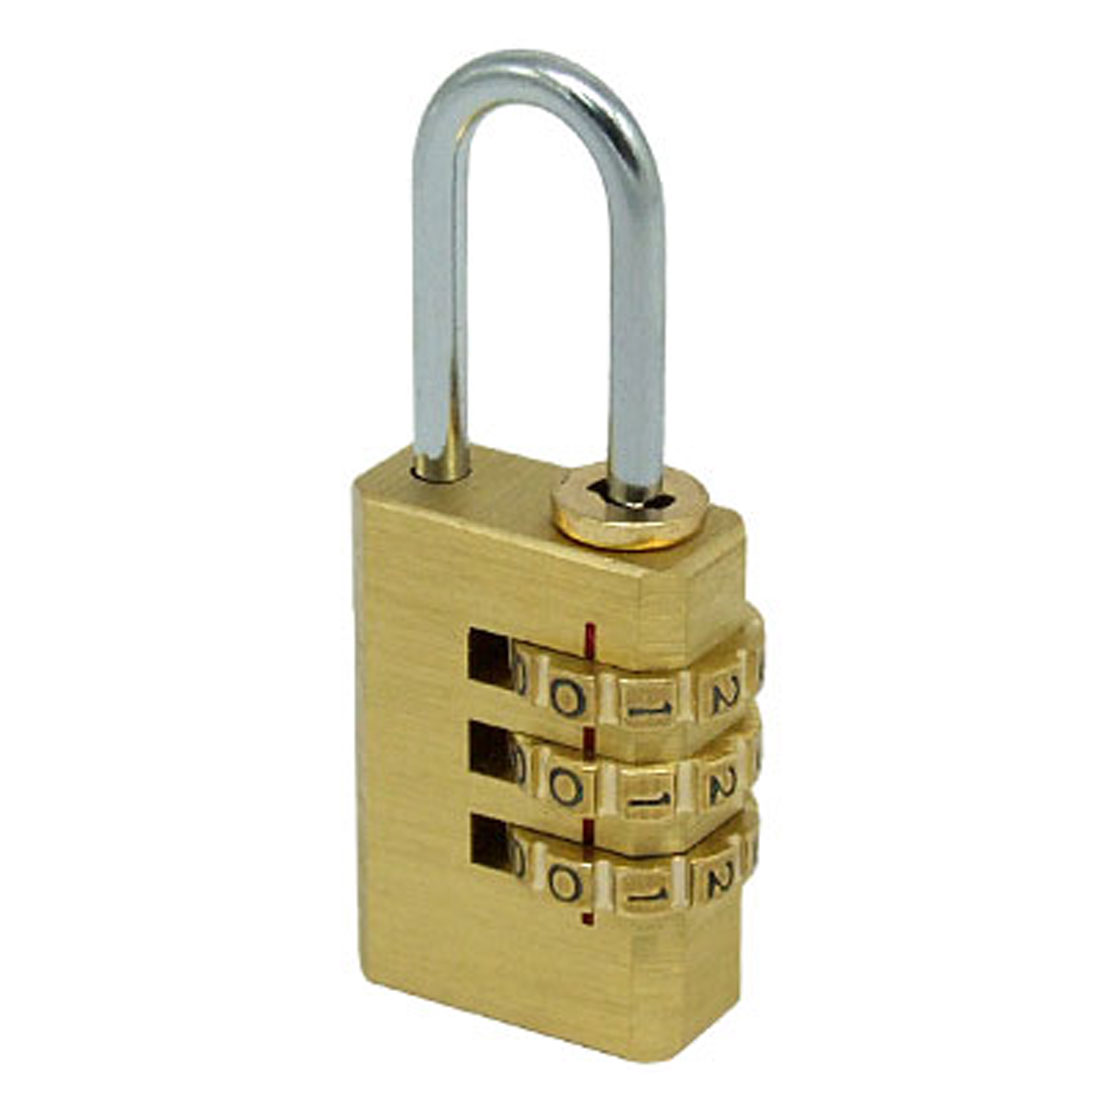 3-D Brass Resettable Combination Padlock Backpack Luggage Coded Lock